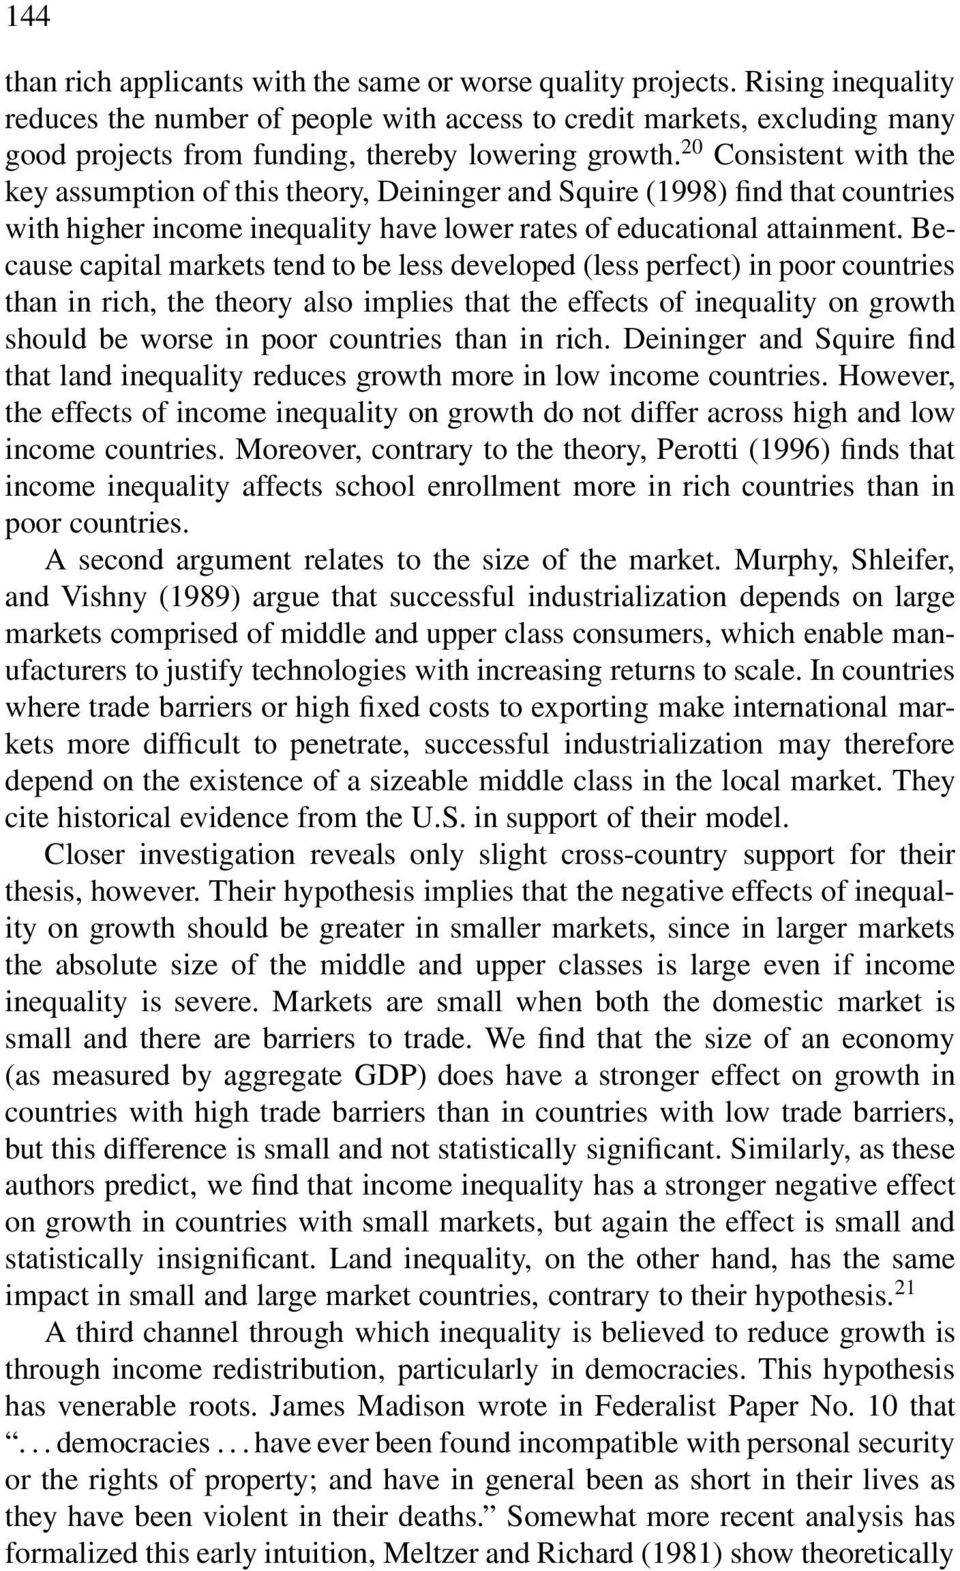 20 Consistent with the key assumption of this theory, Deininger and Squire (1998) find that countries with higher income inequality have lower rates of educational attainment.